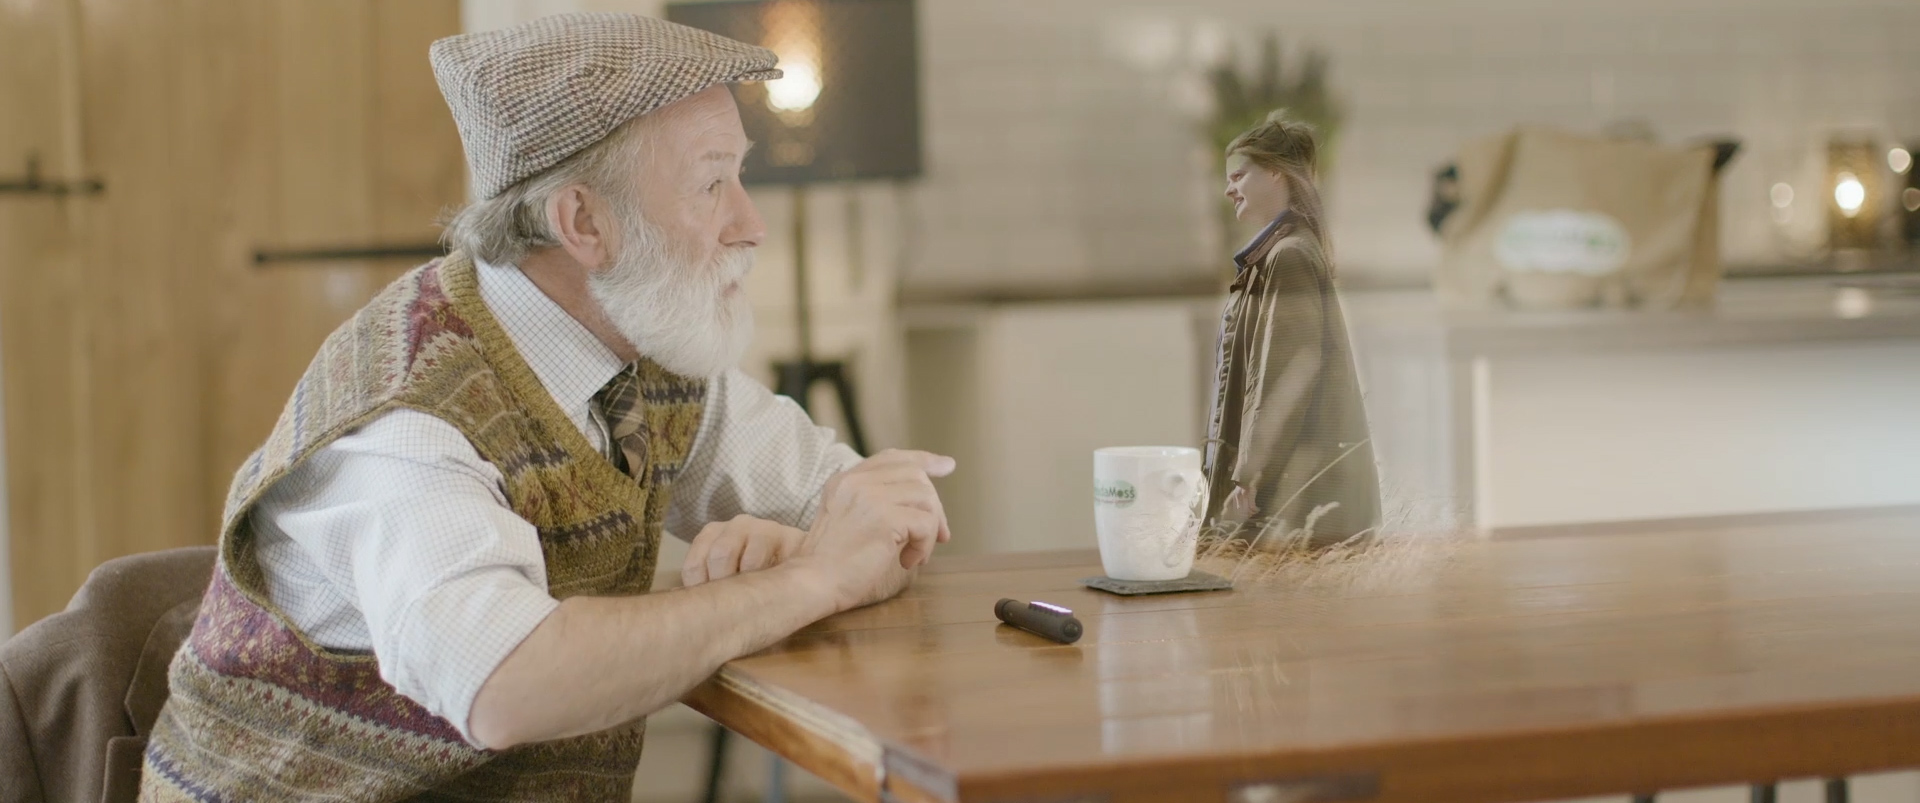 The Carbon Farmer (Melvyn Rawlinson) video calling his Sophie using a futuristic device